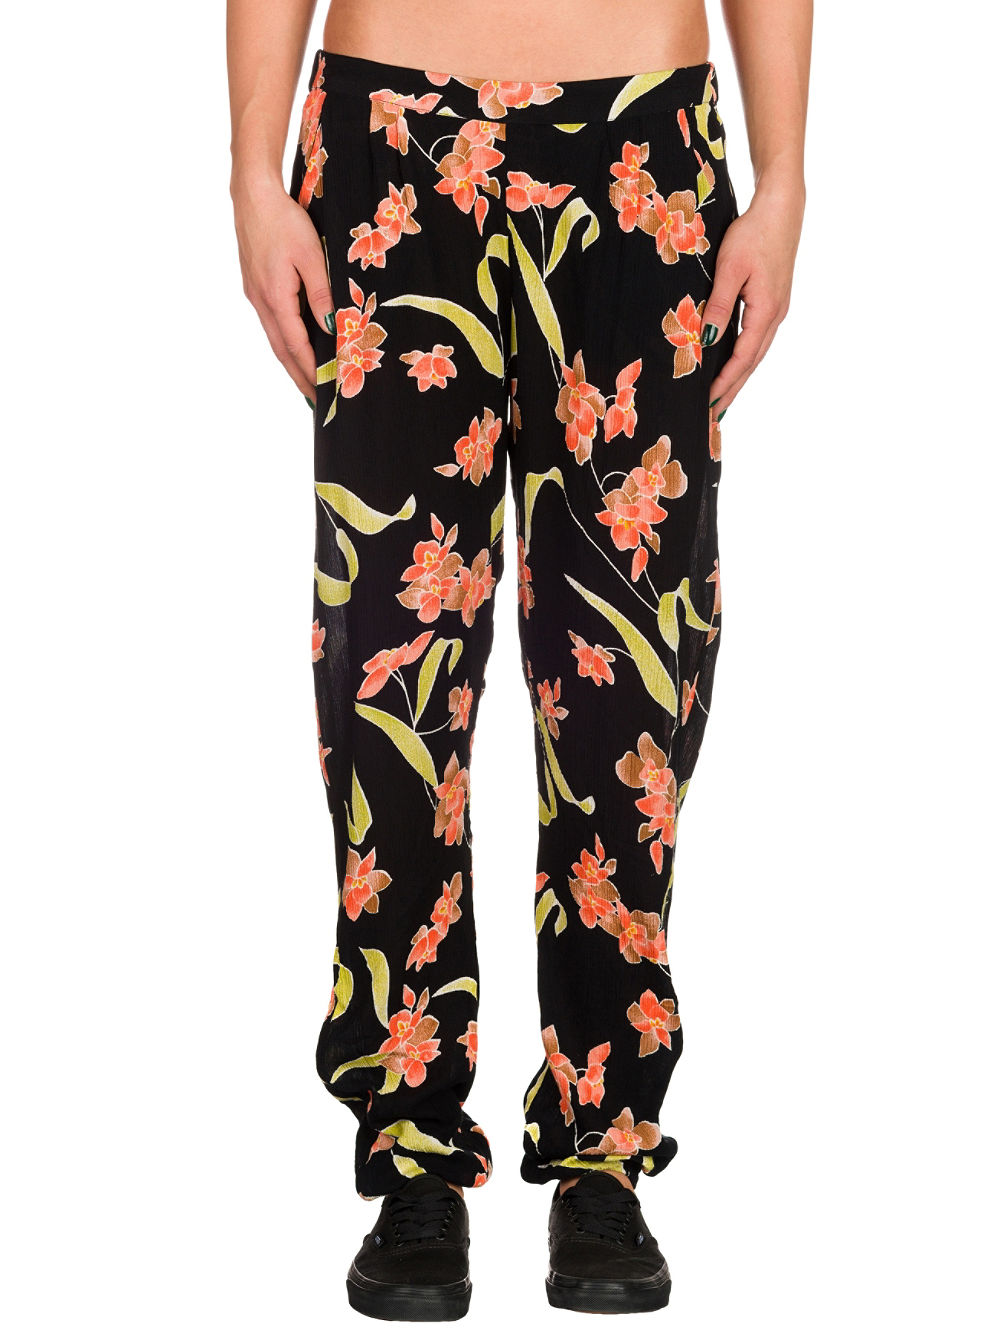 Crush Starter Pants